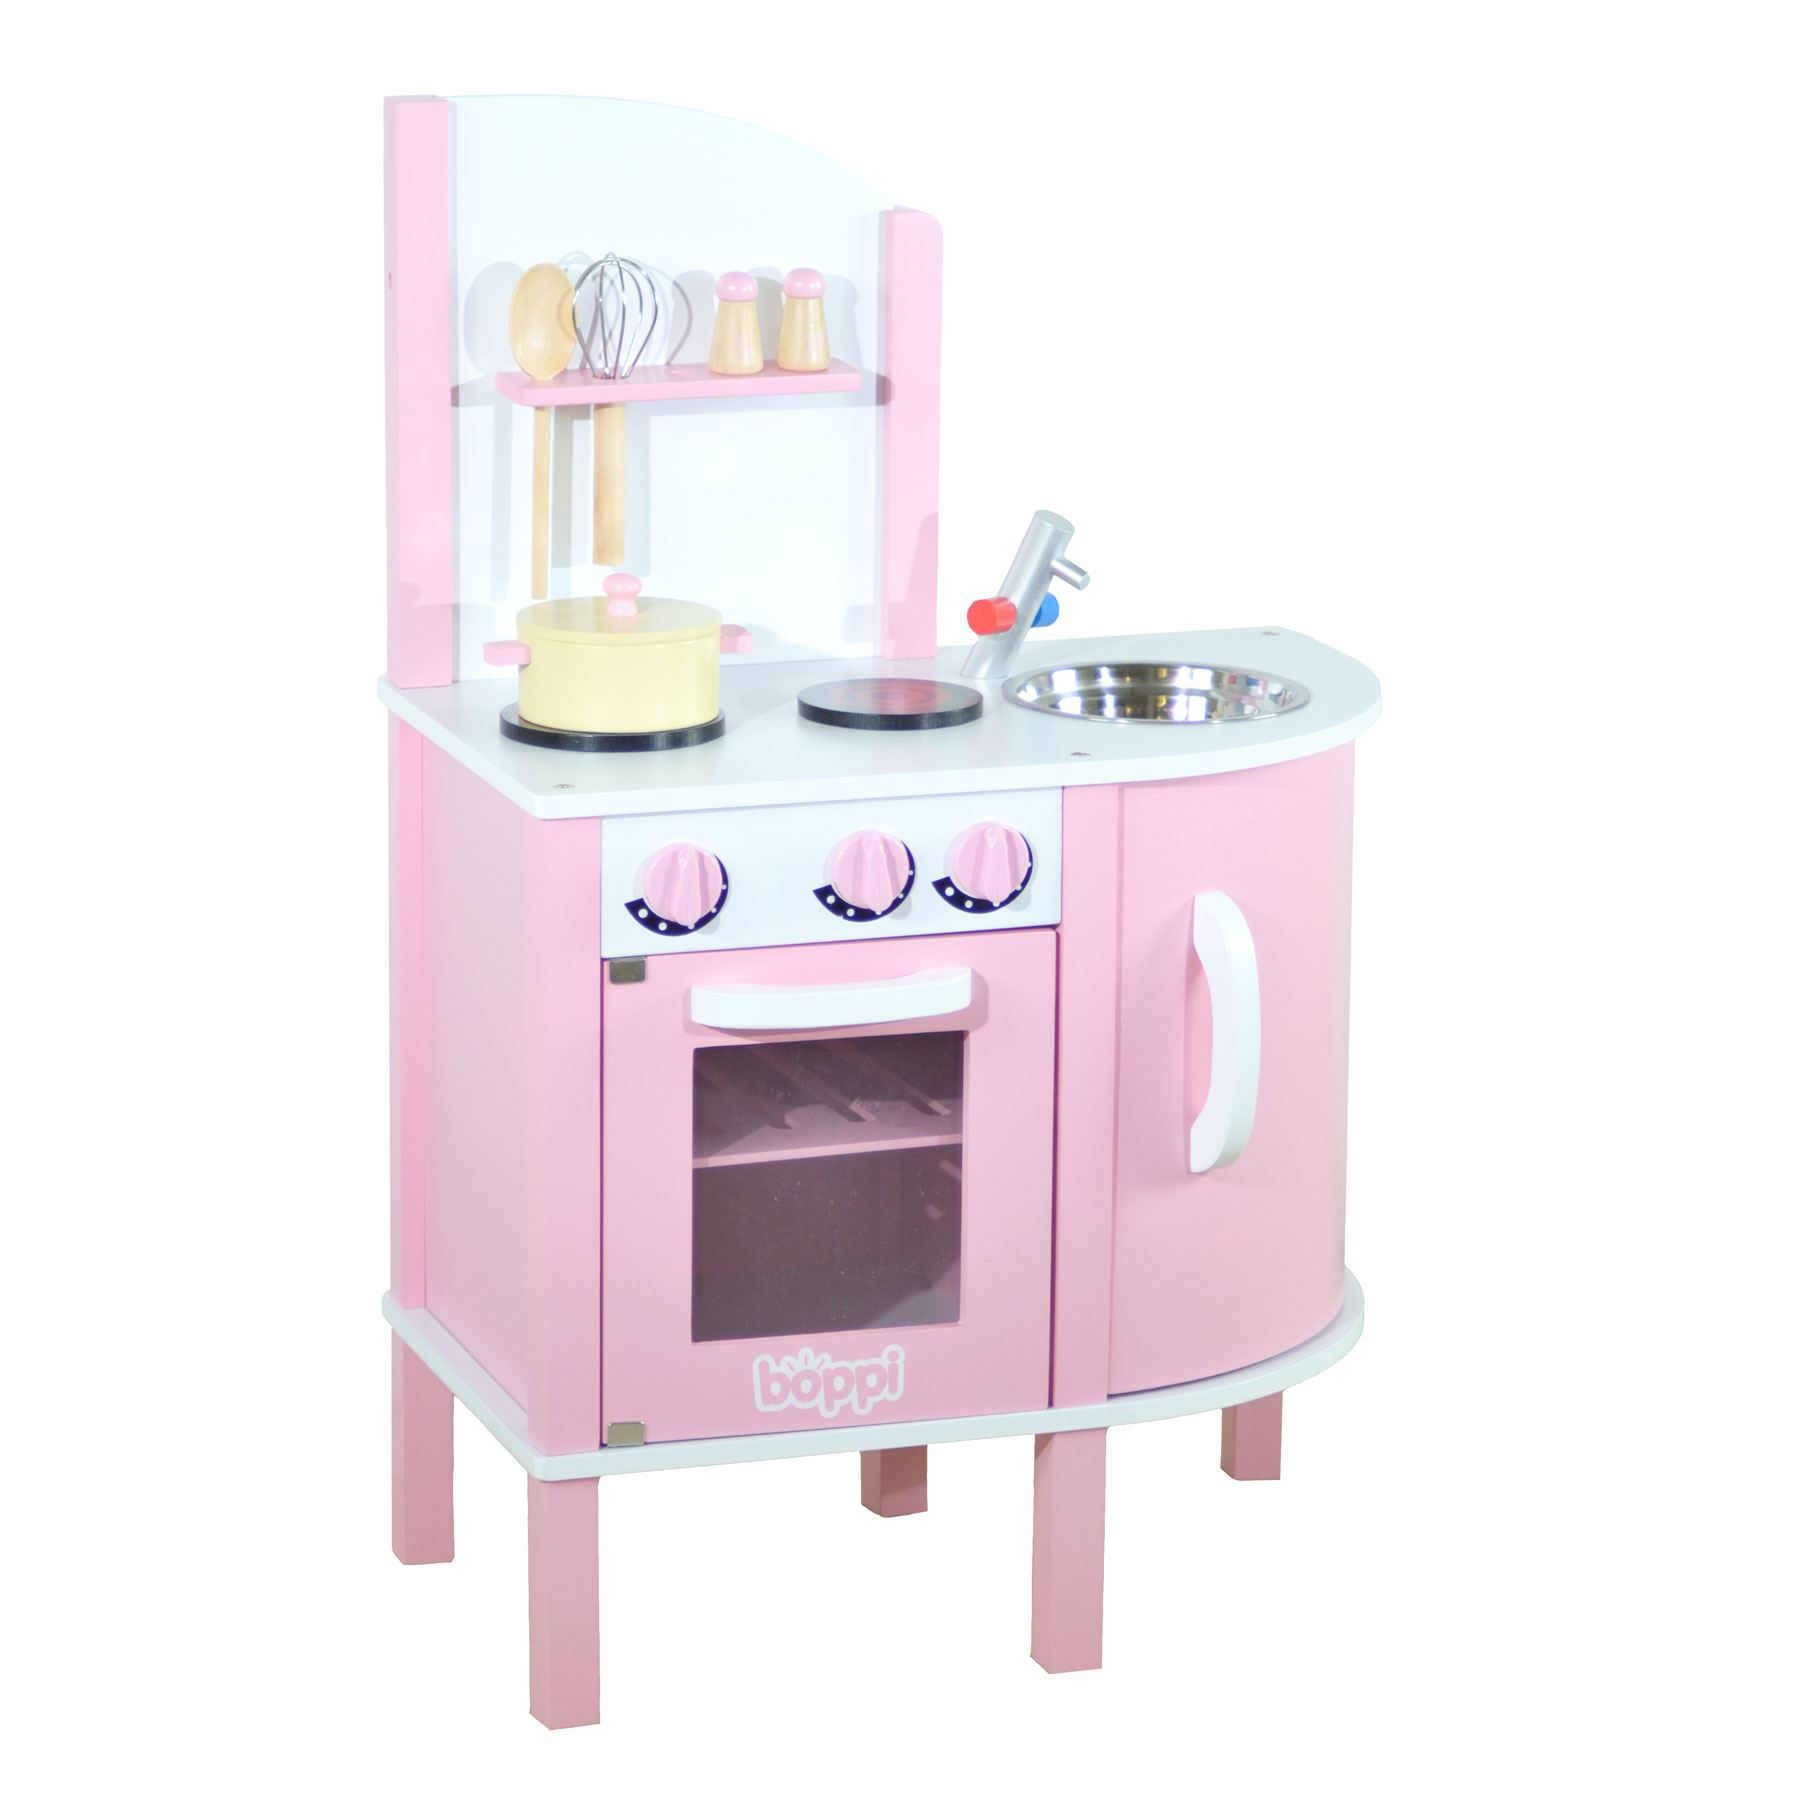 wooden toy kitchen accessories childrens pink wooden kitchen with 5 1651